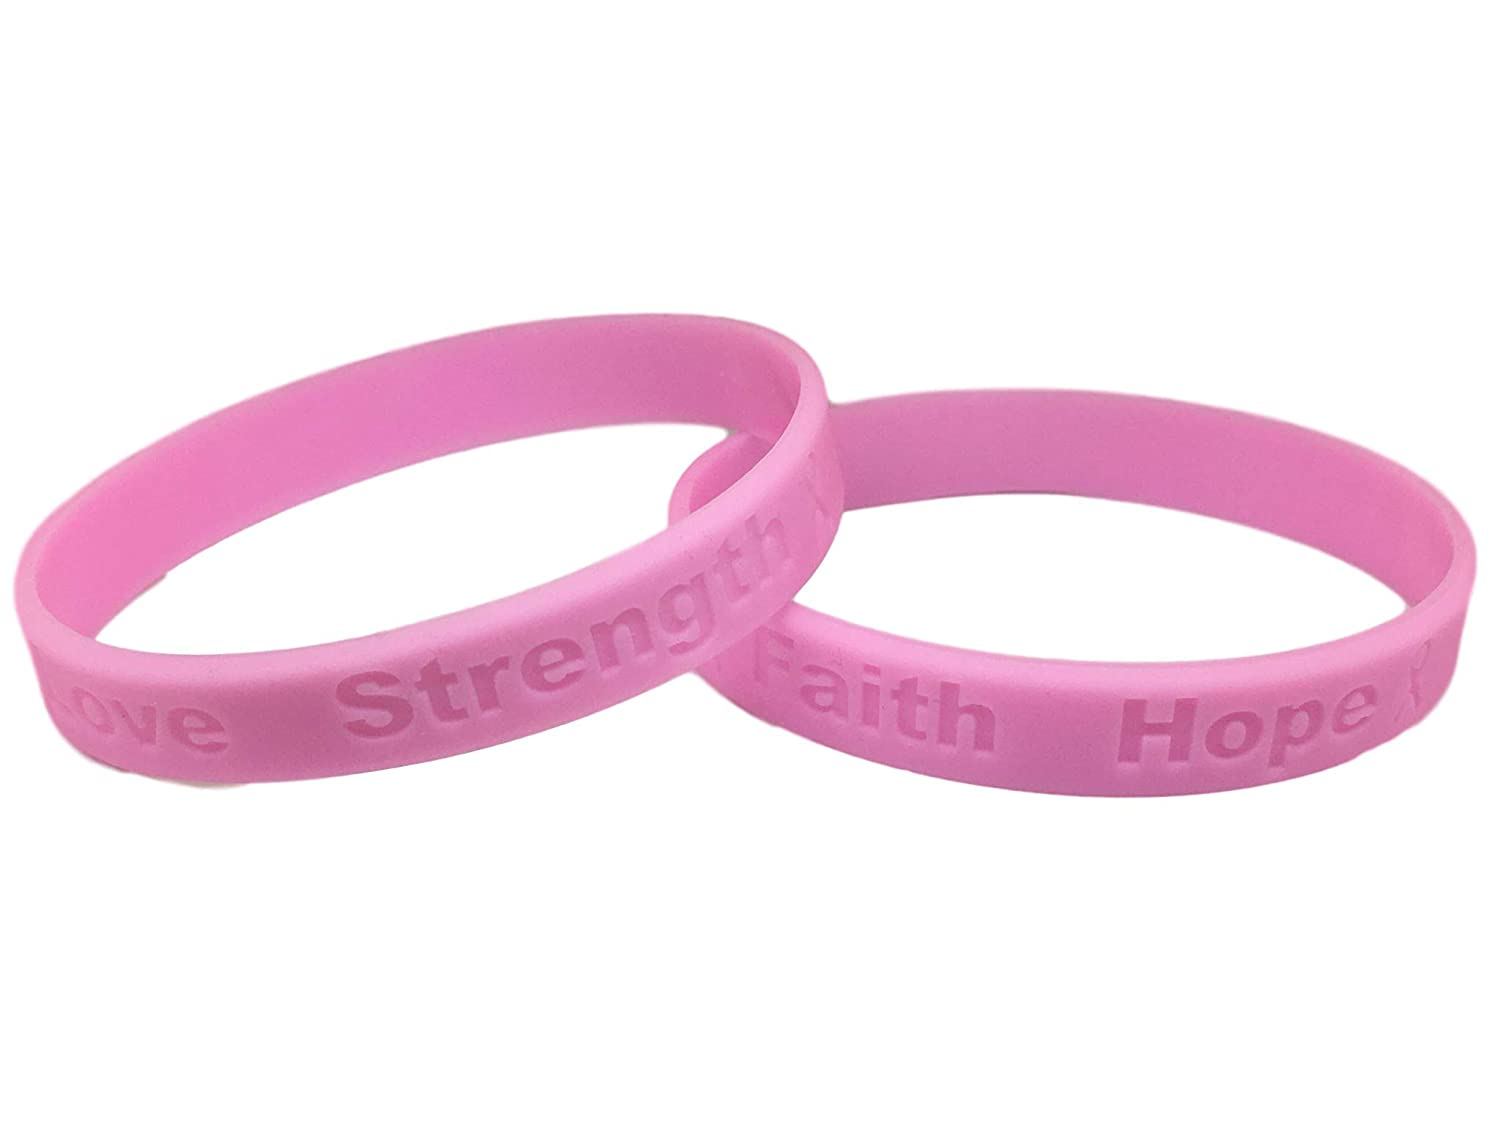 2 High Quality Bracelets Medical Grade Silicone 2 Pink Breast Cancer Awareness Bracelets Latex and Toxin Free